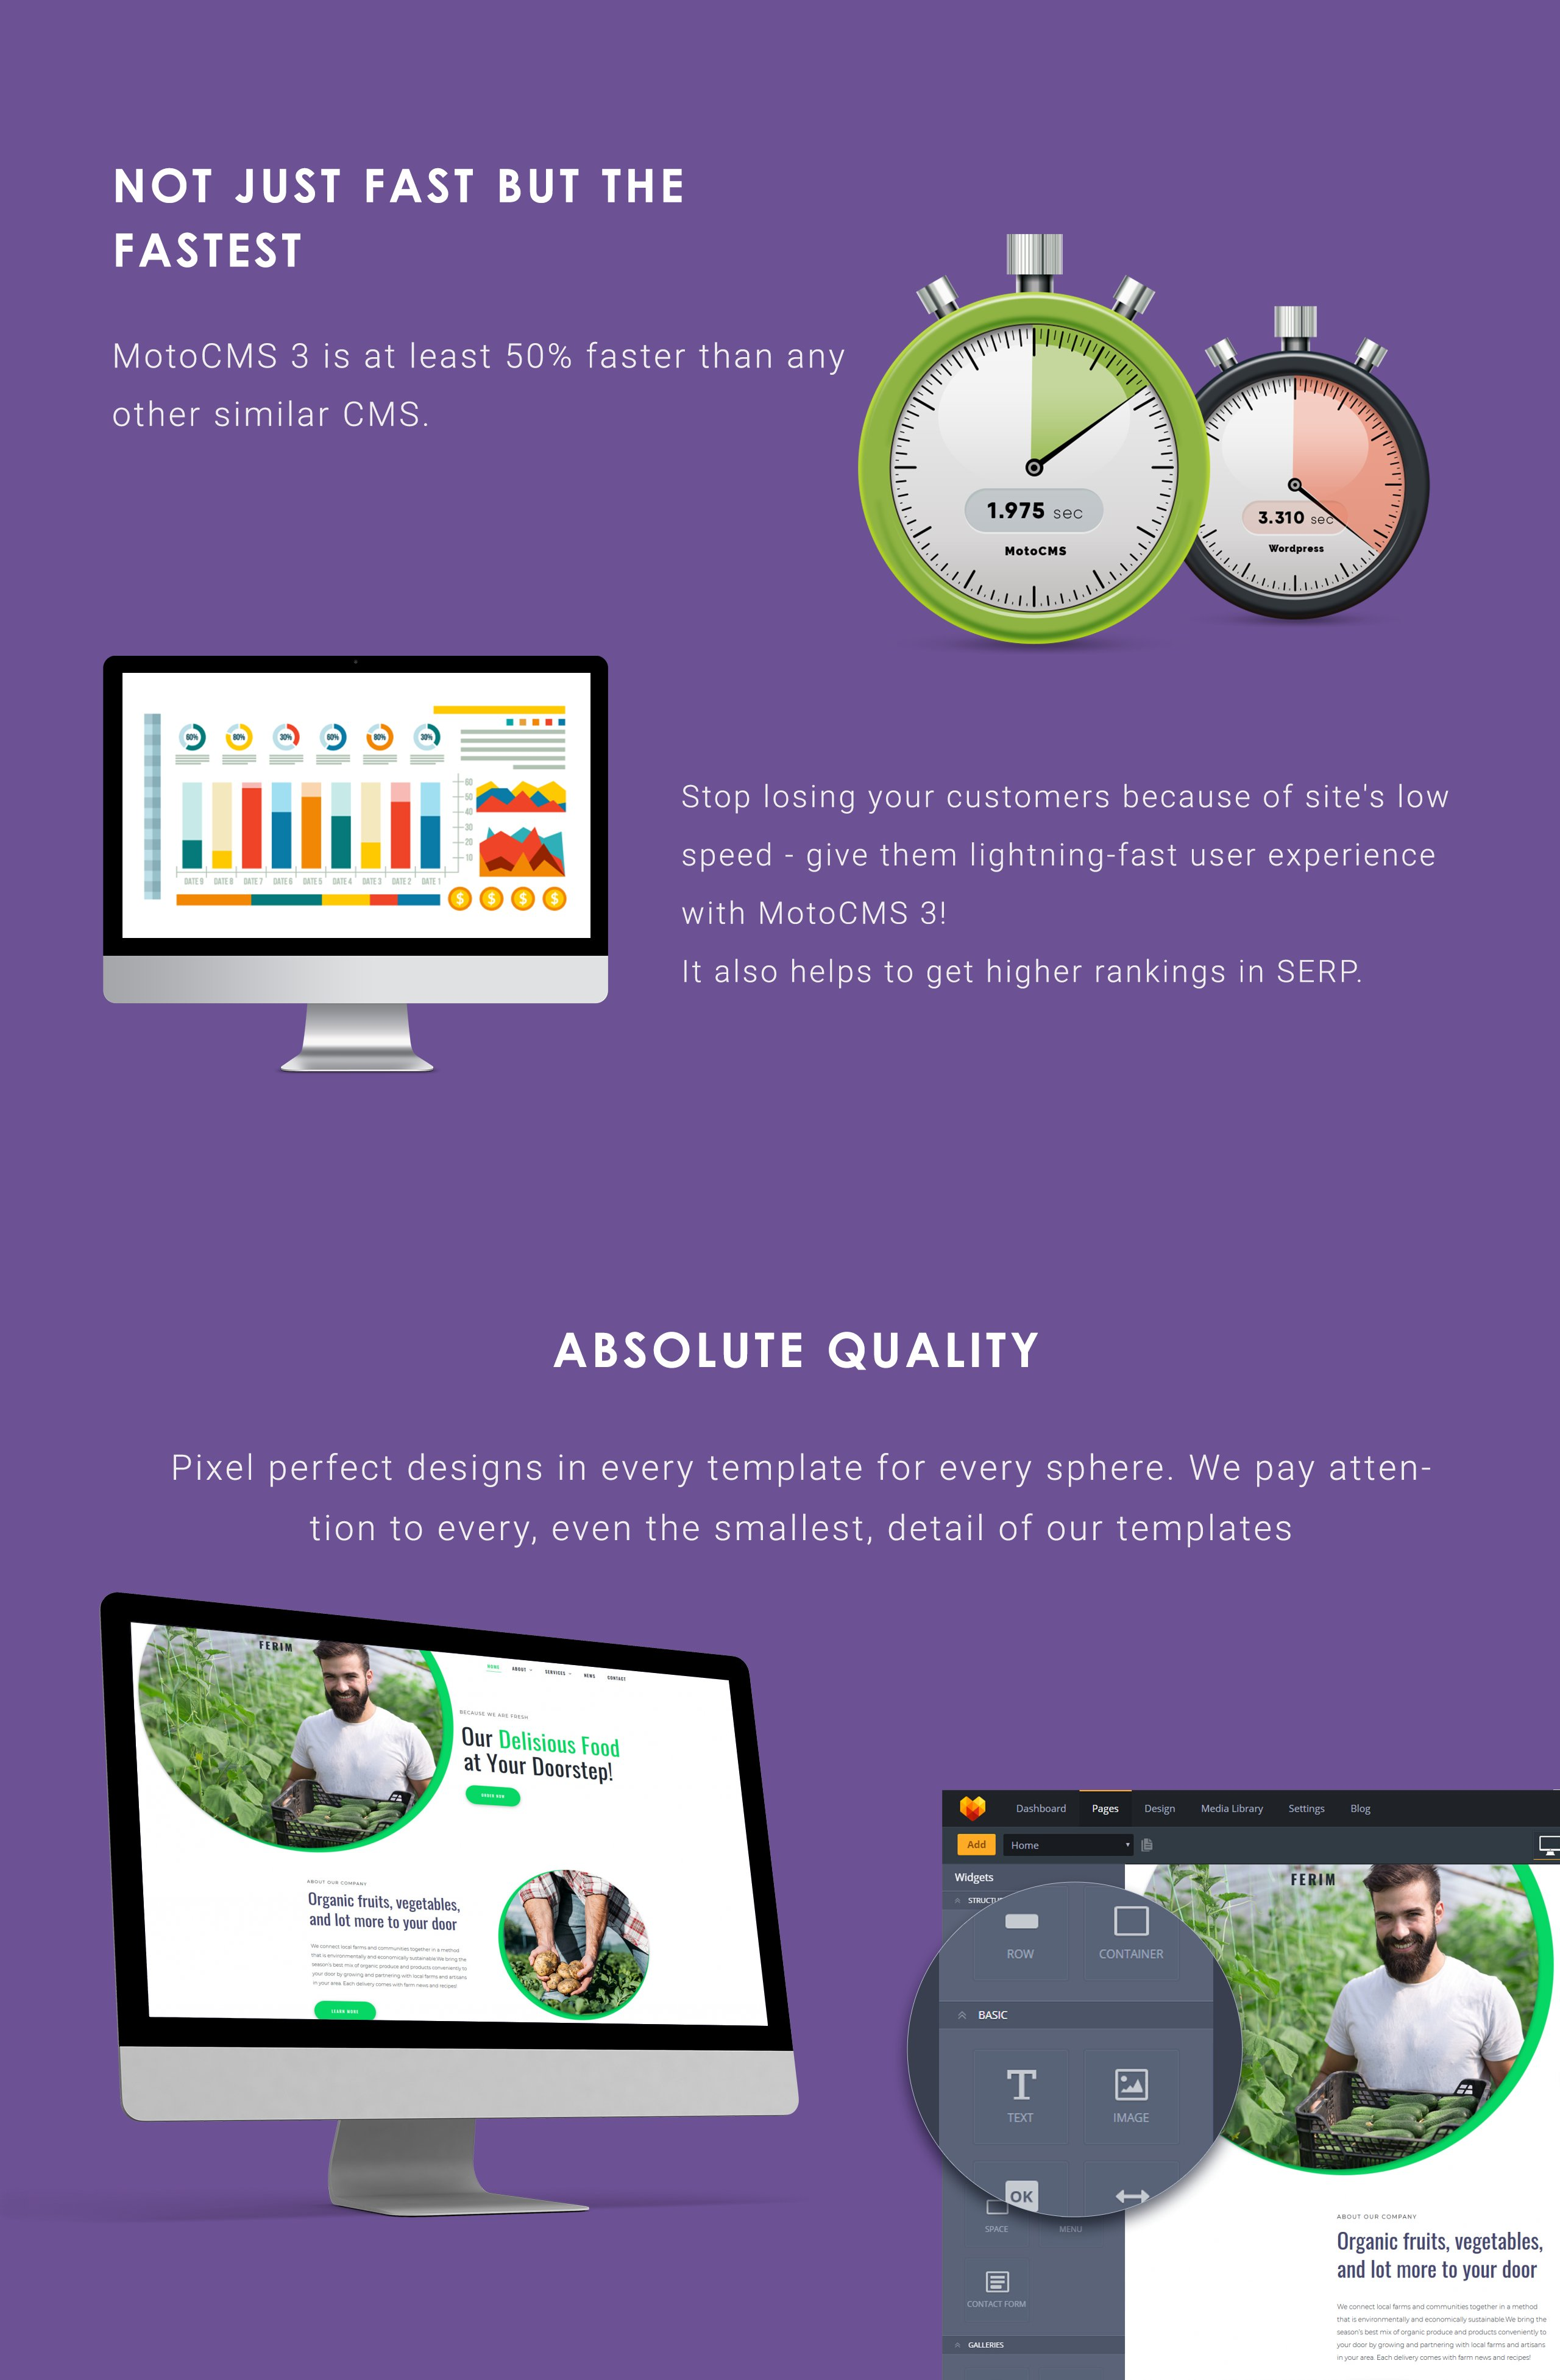 Ferim - Food Delivery Moto CMS 3 Template